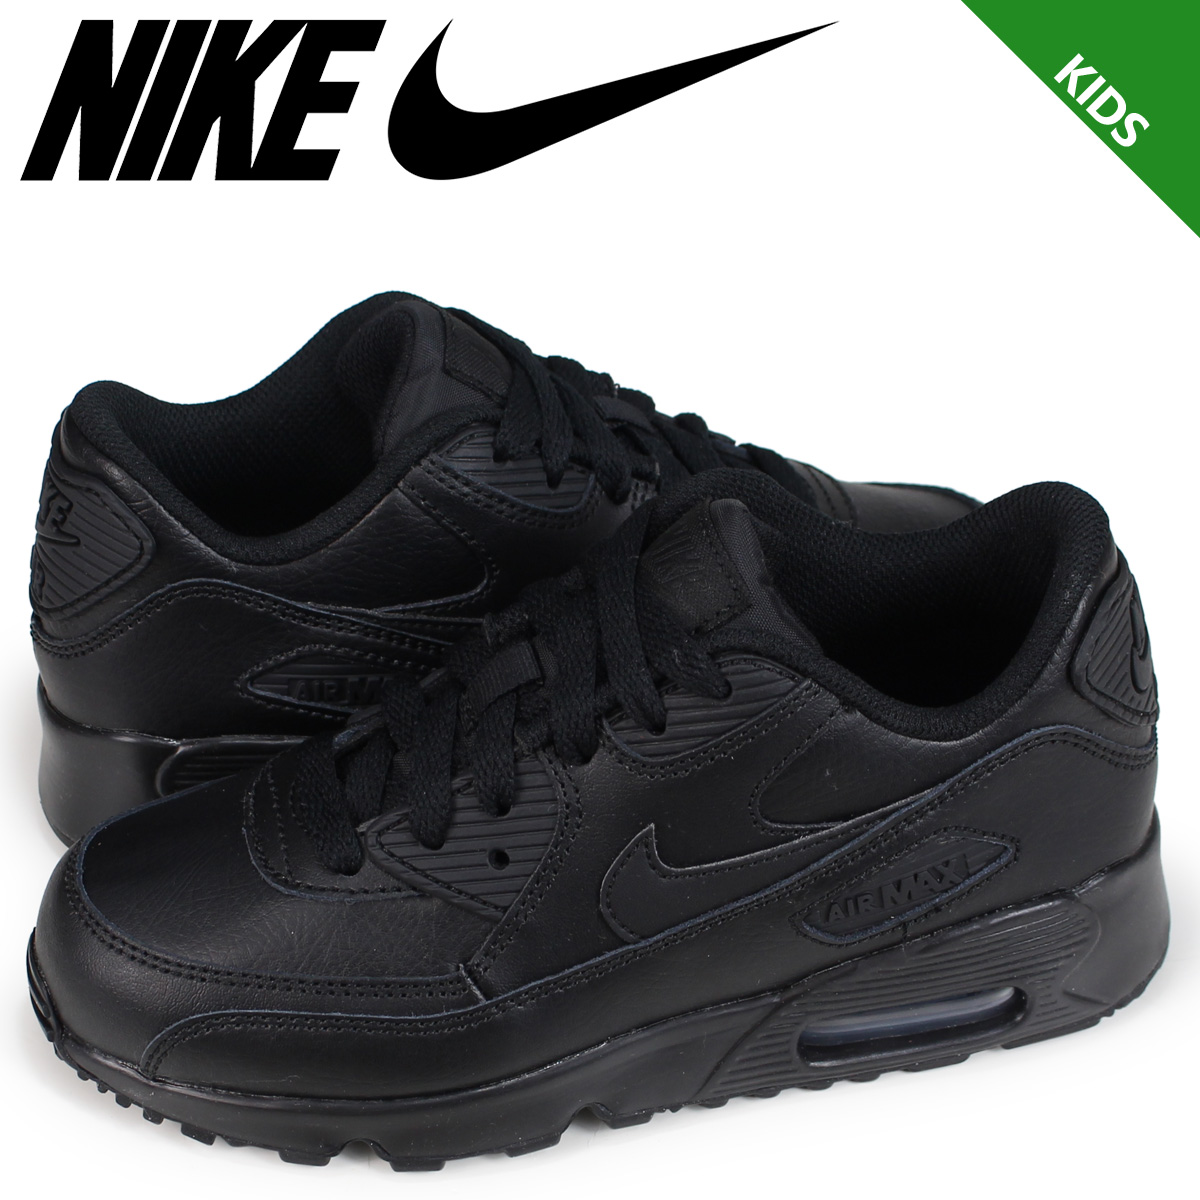 NIKE AIR MAX 90 LEATHER PS Kie Ney AMAX 90 kids sneakers 833,414 001 black